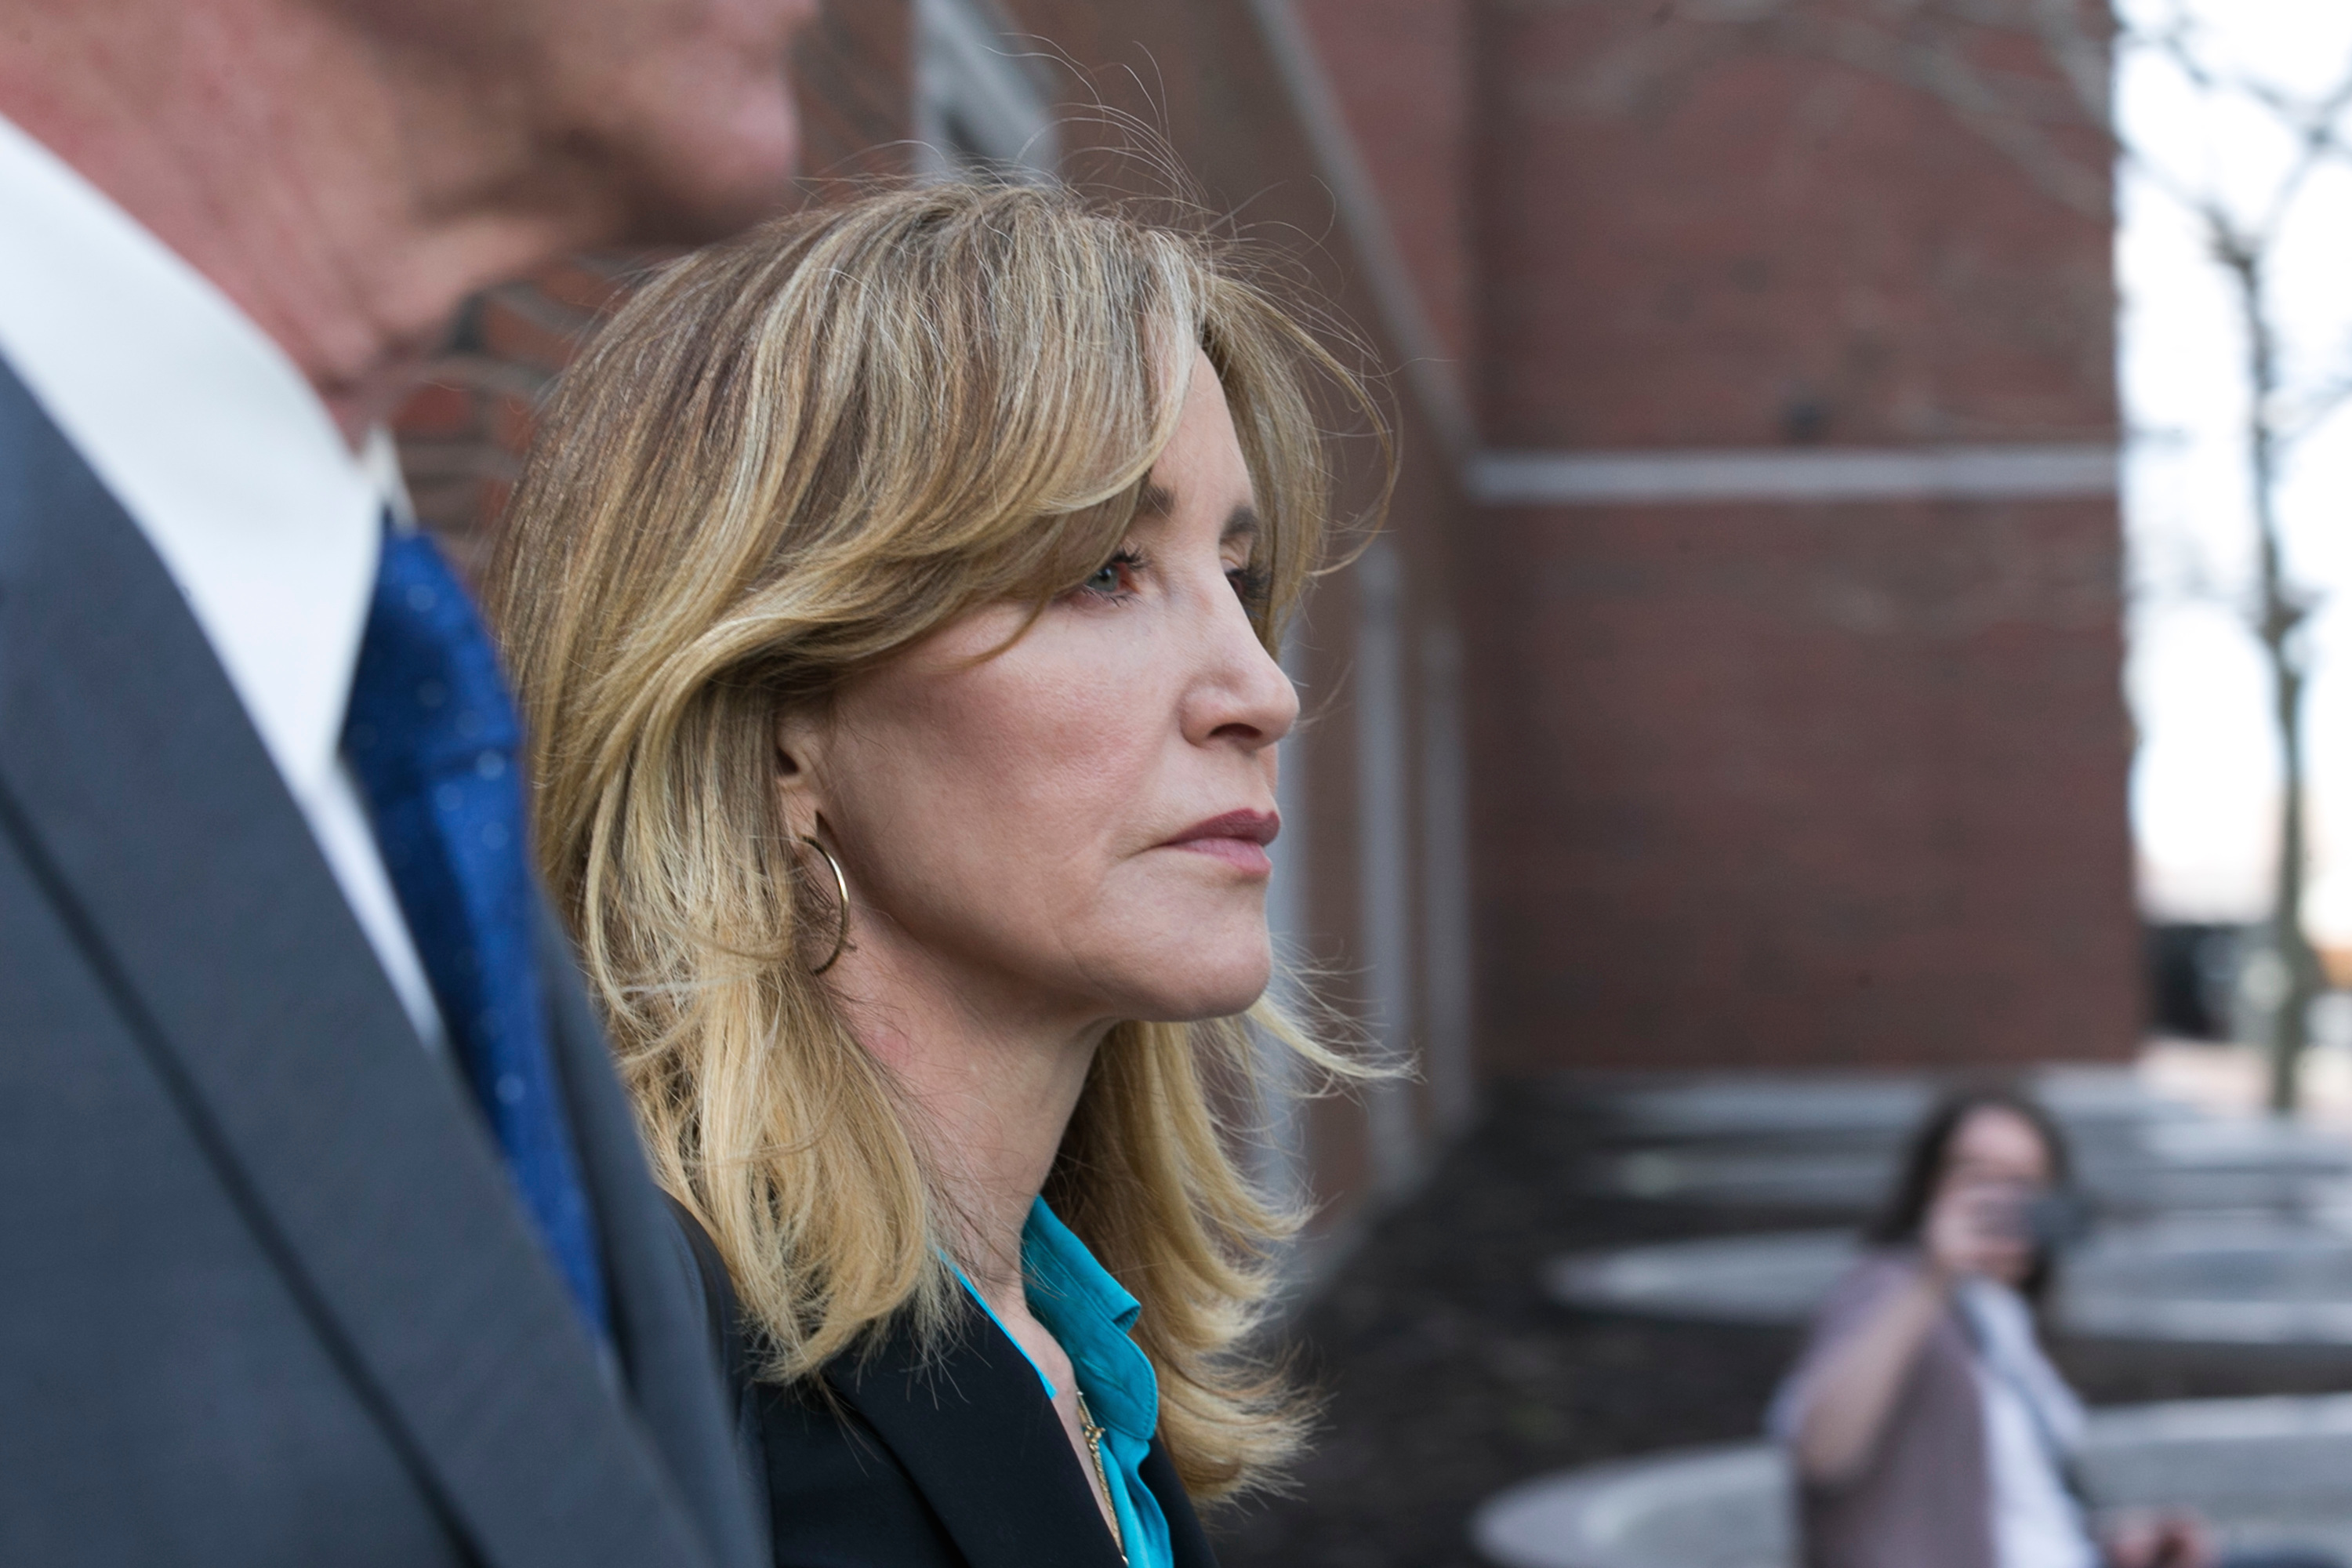 Felicity Huffman Sentenced to 14 Days in Prison After College Admissions Scandal